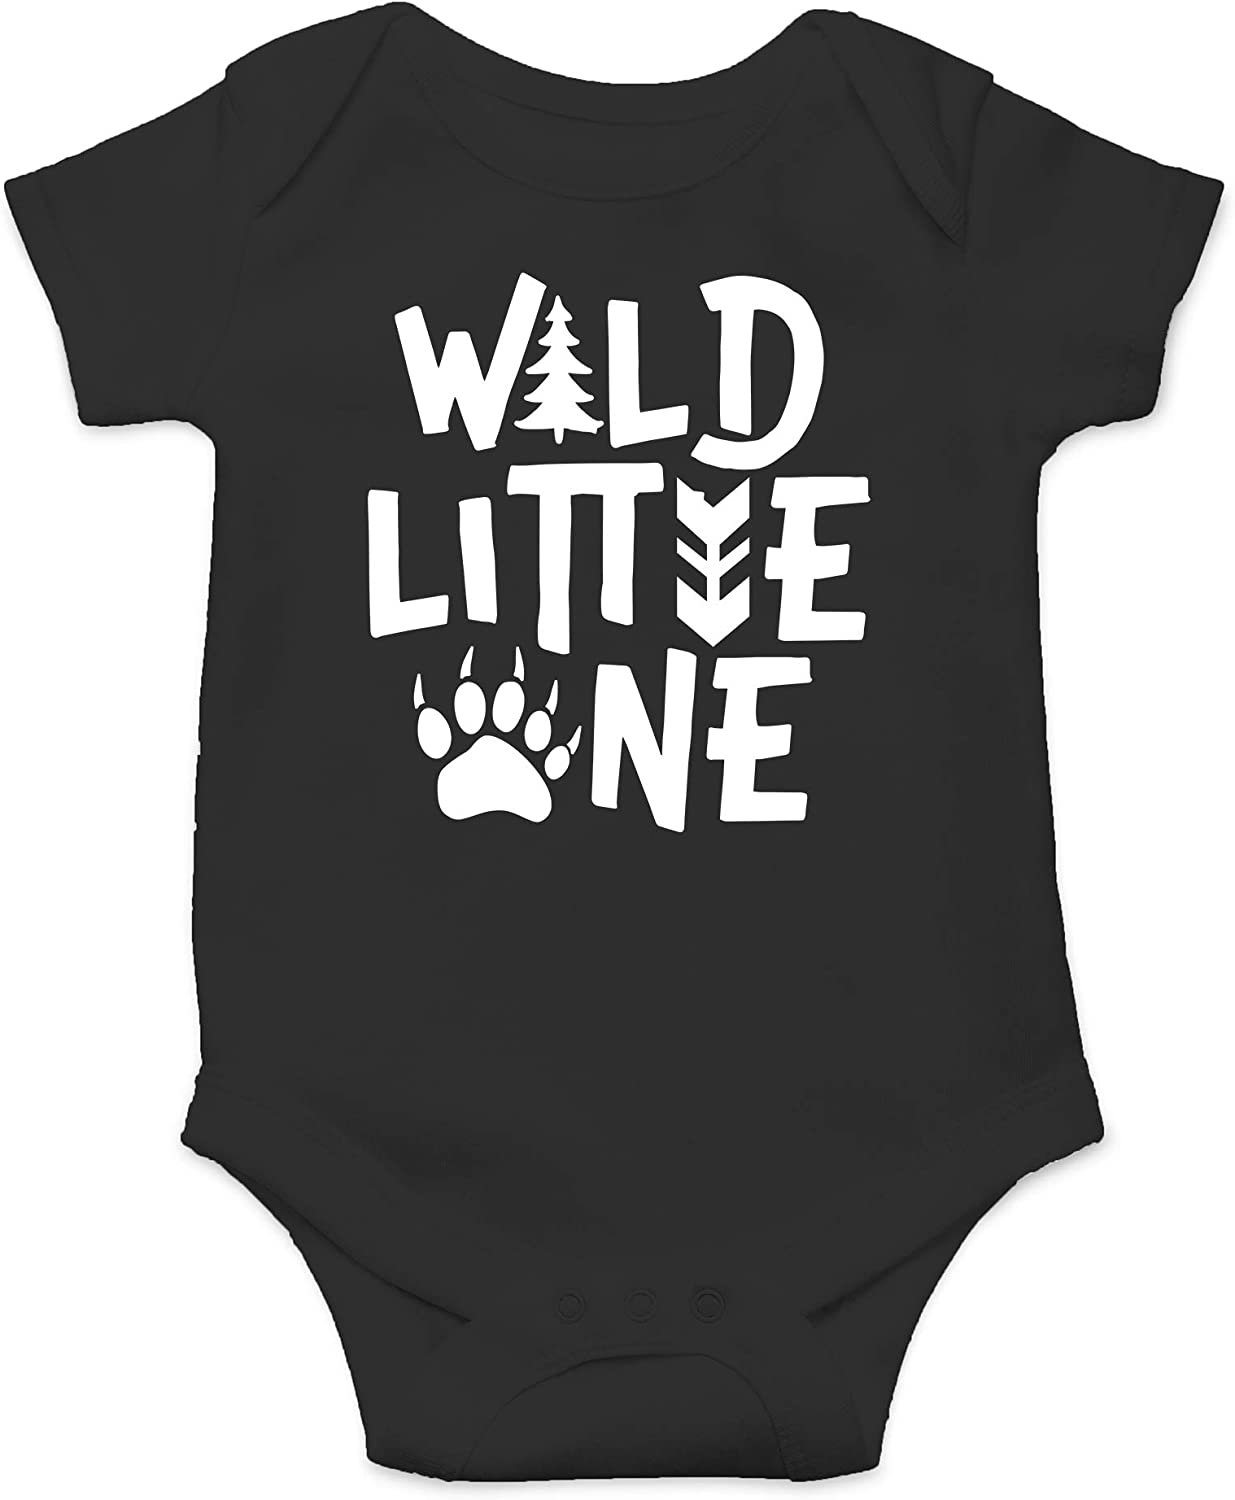 Wild Little One - Let The Adventure Begin Coming Home Outfit - Cute Infant One-Piece Baby Bodysuit